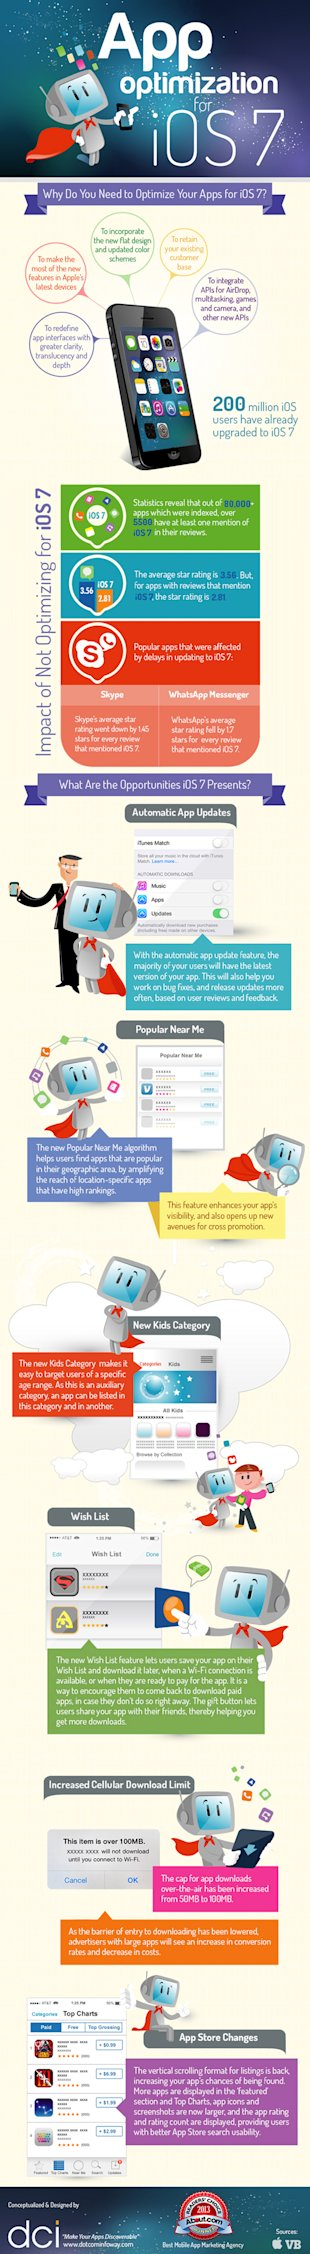 App Optimization for iOS 7 [Infographic] image infographic app optimization for ios7.14